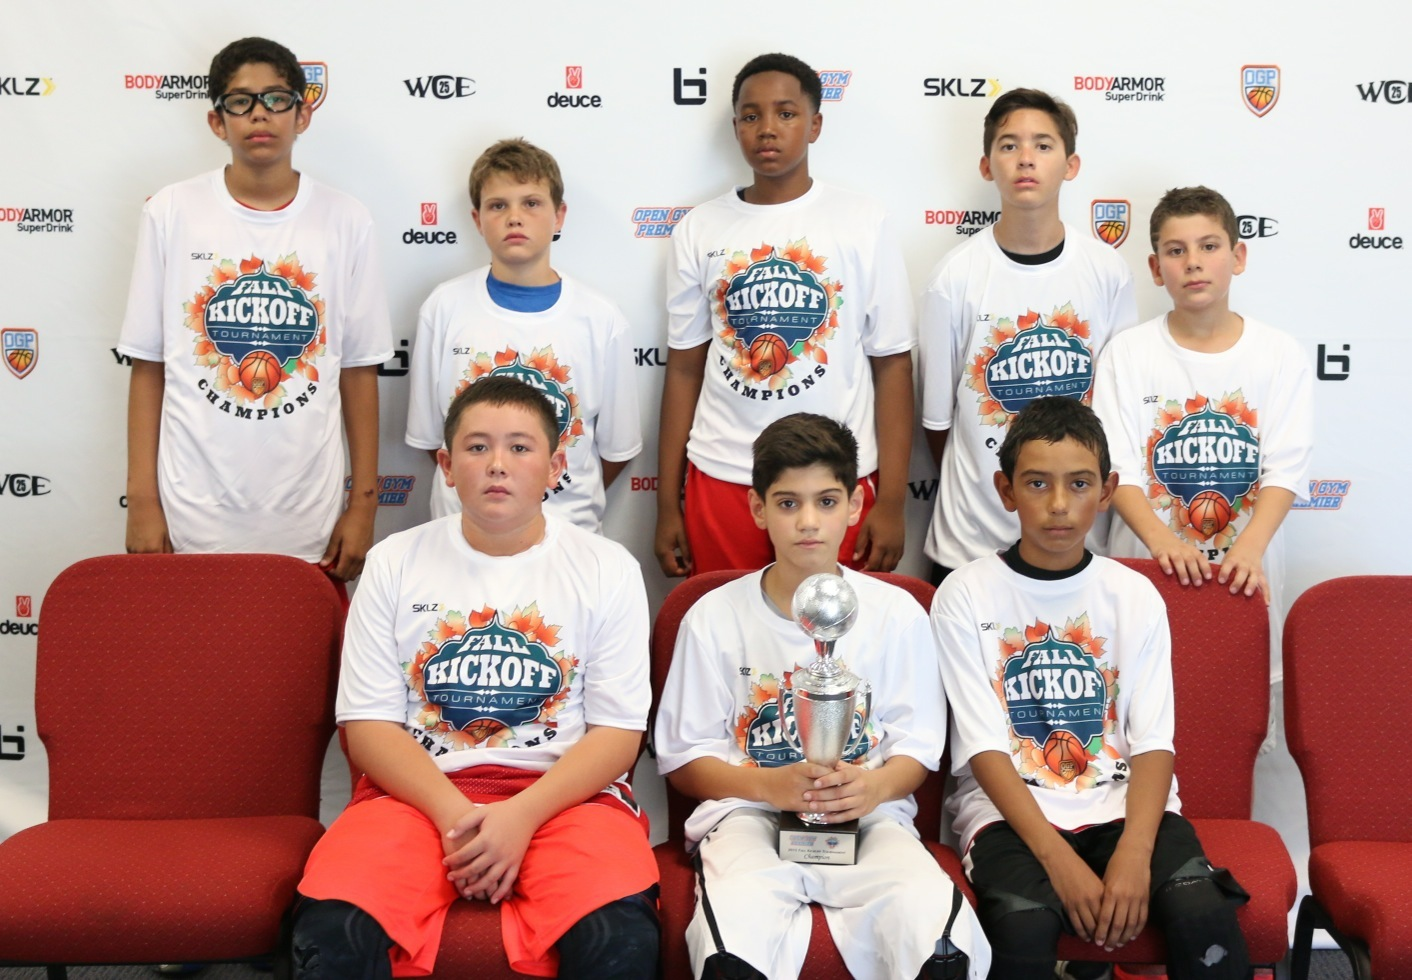 the truth paul pierce wins 12u gold at open gym premier kickoff classic - Paul Pierce Halloween